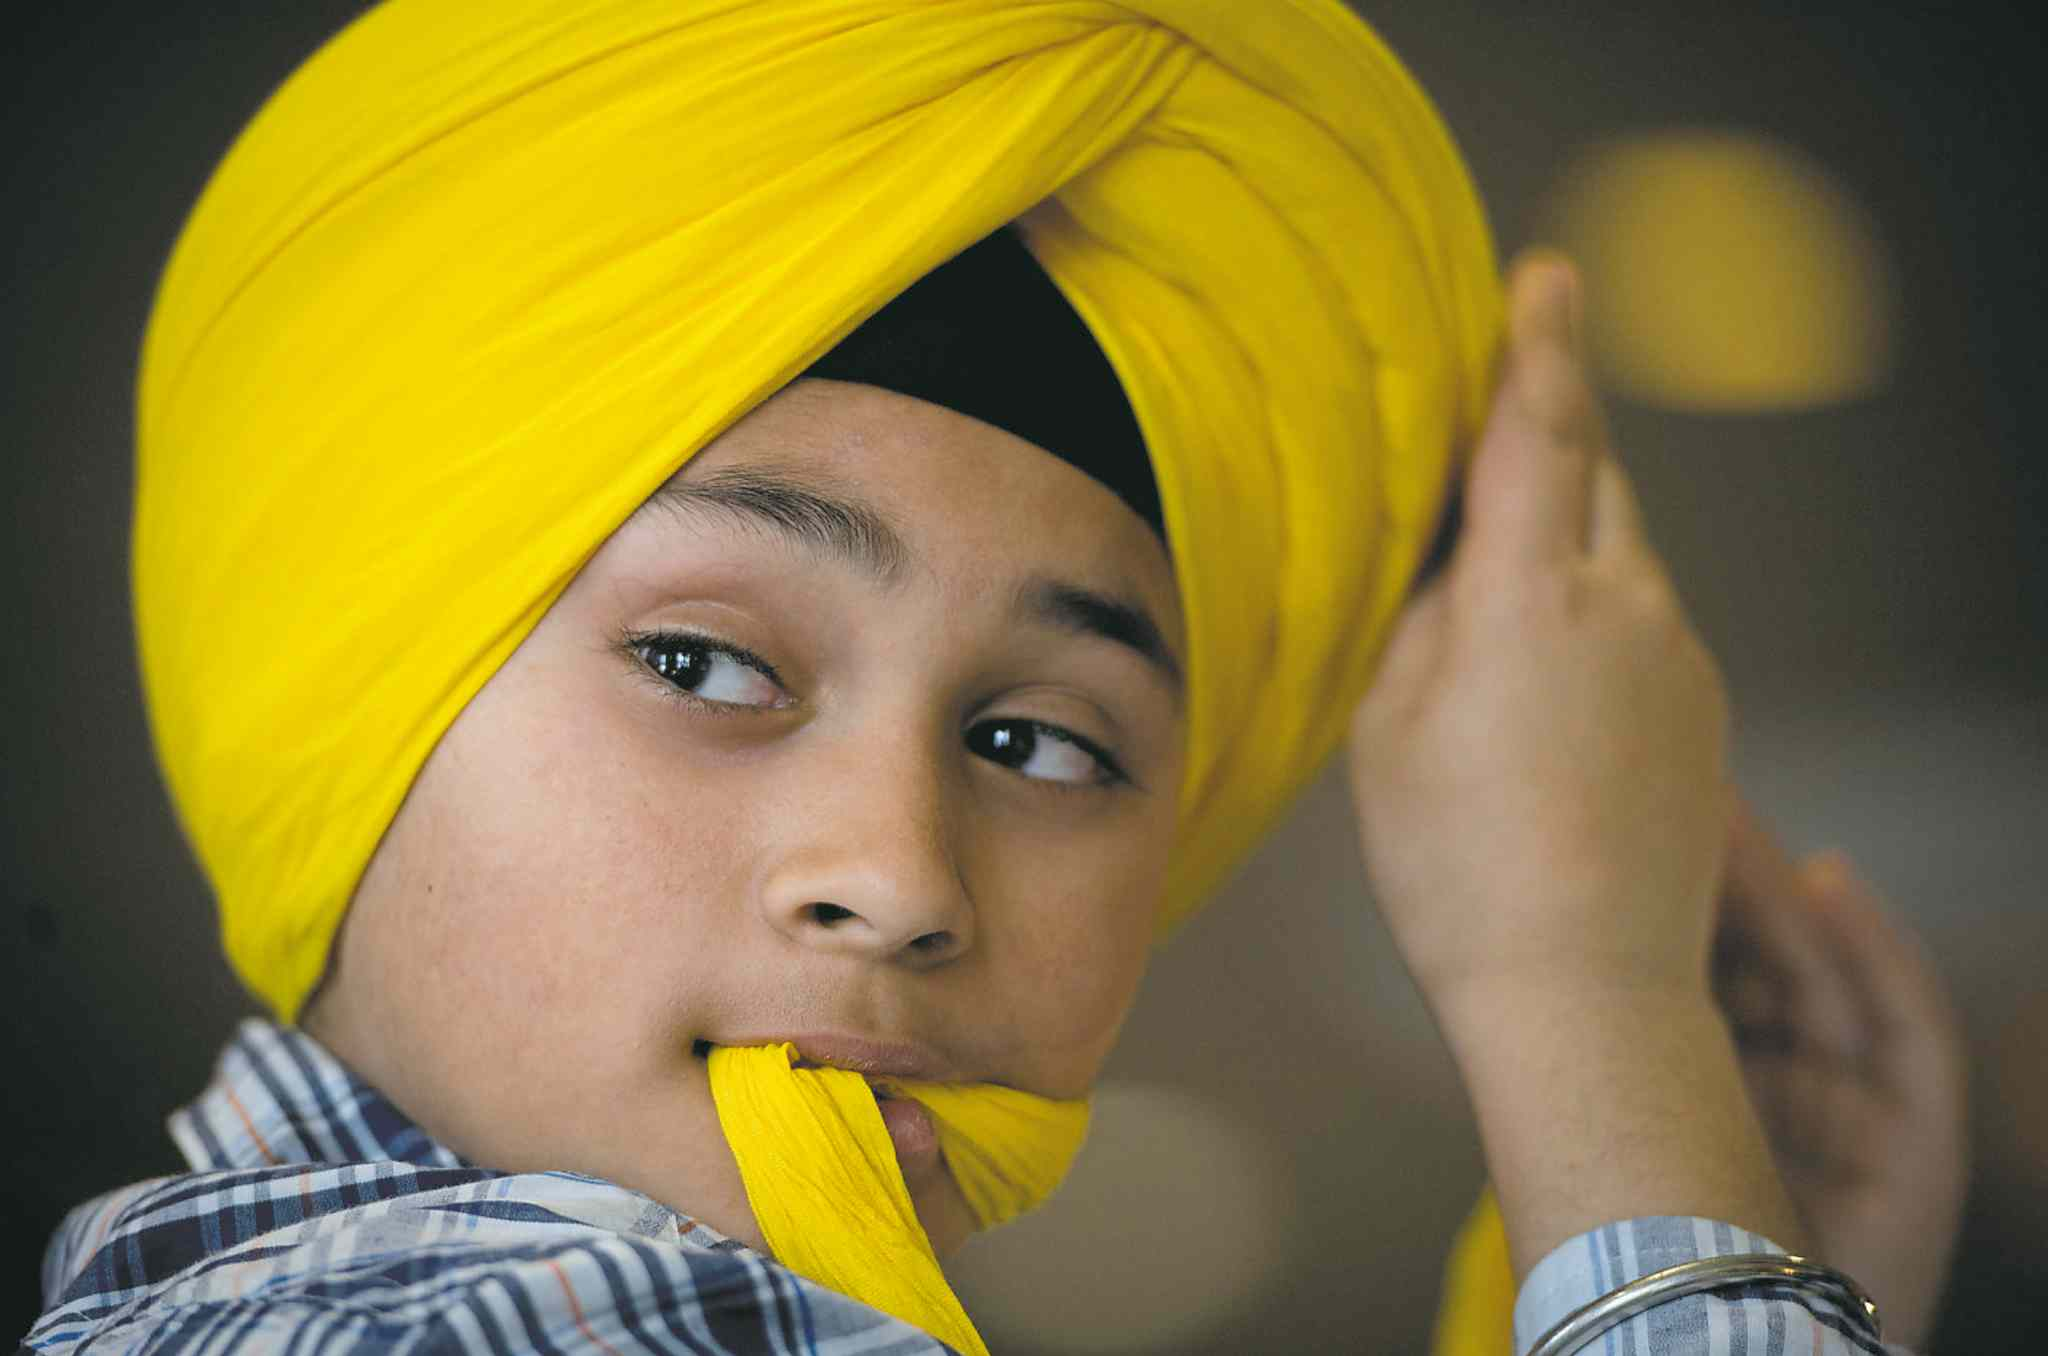 A competitor takes part in a turban tying competition in Surrey earlier this year. The city has a vibrant South Asian culture.